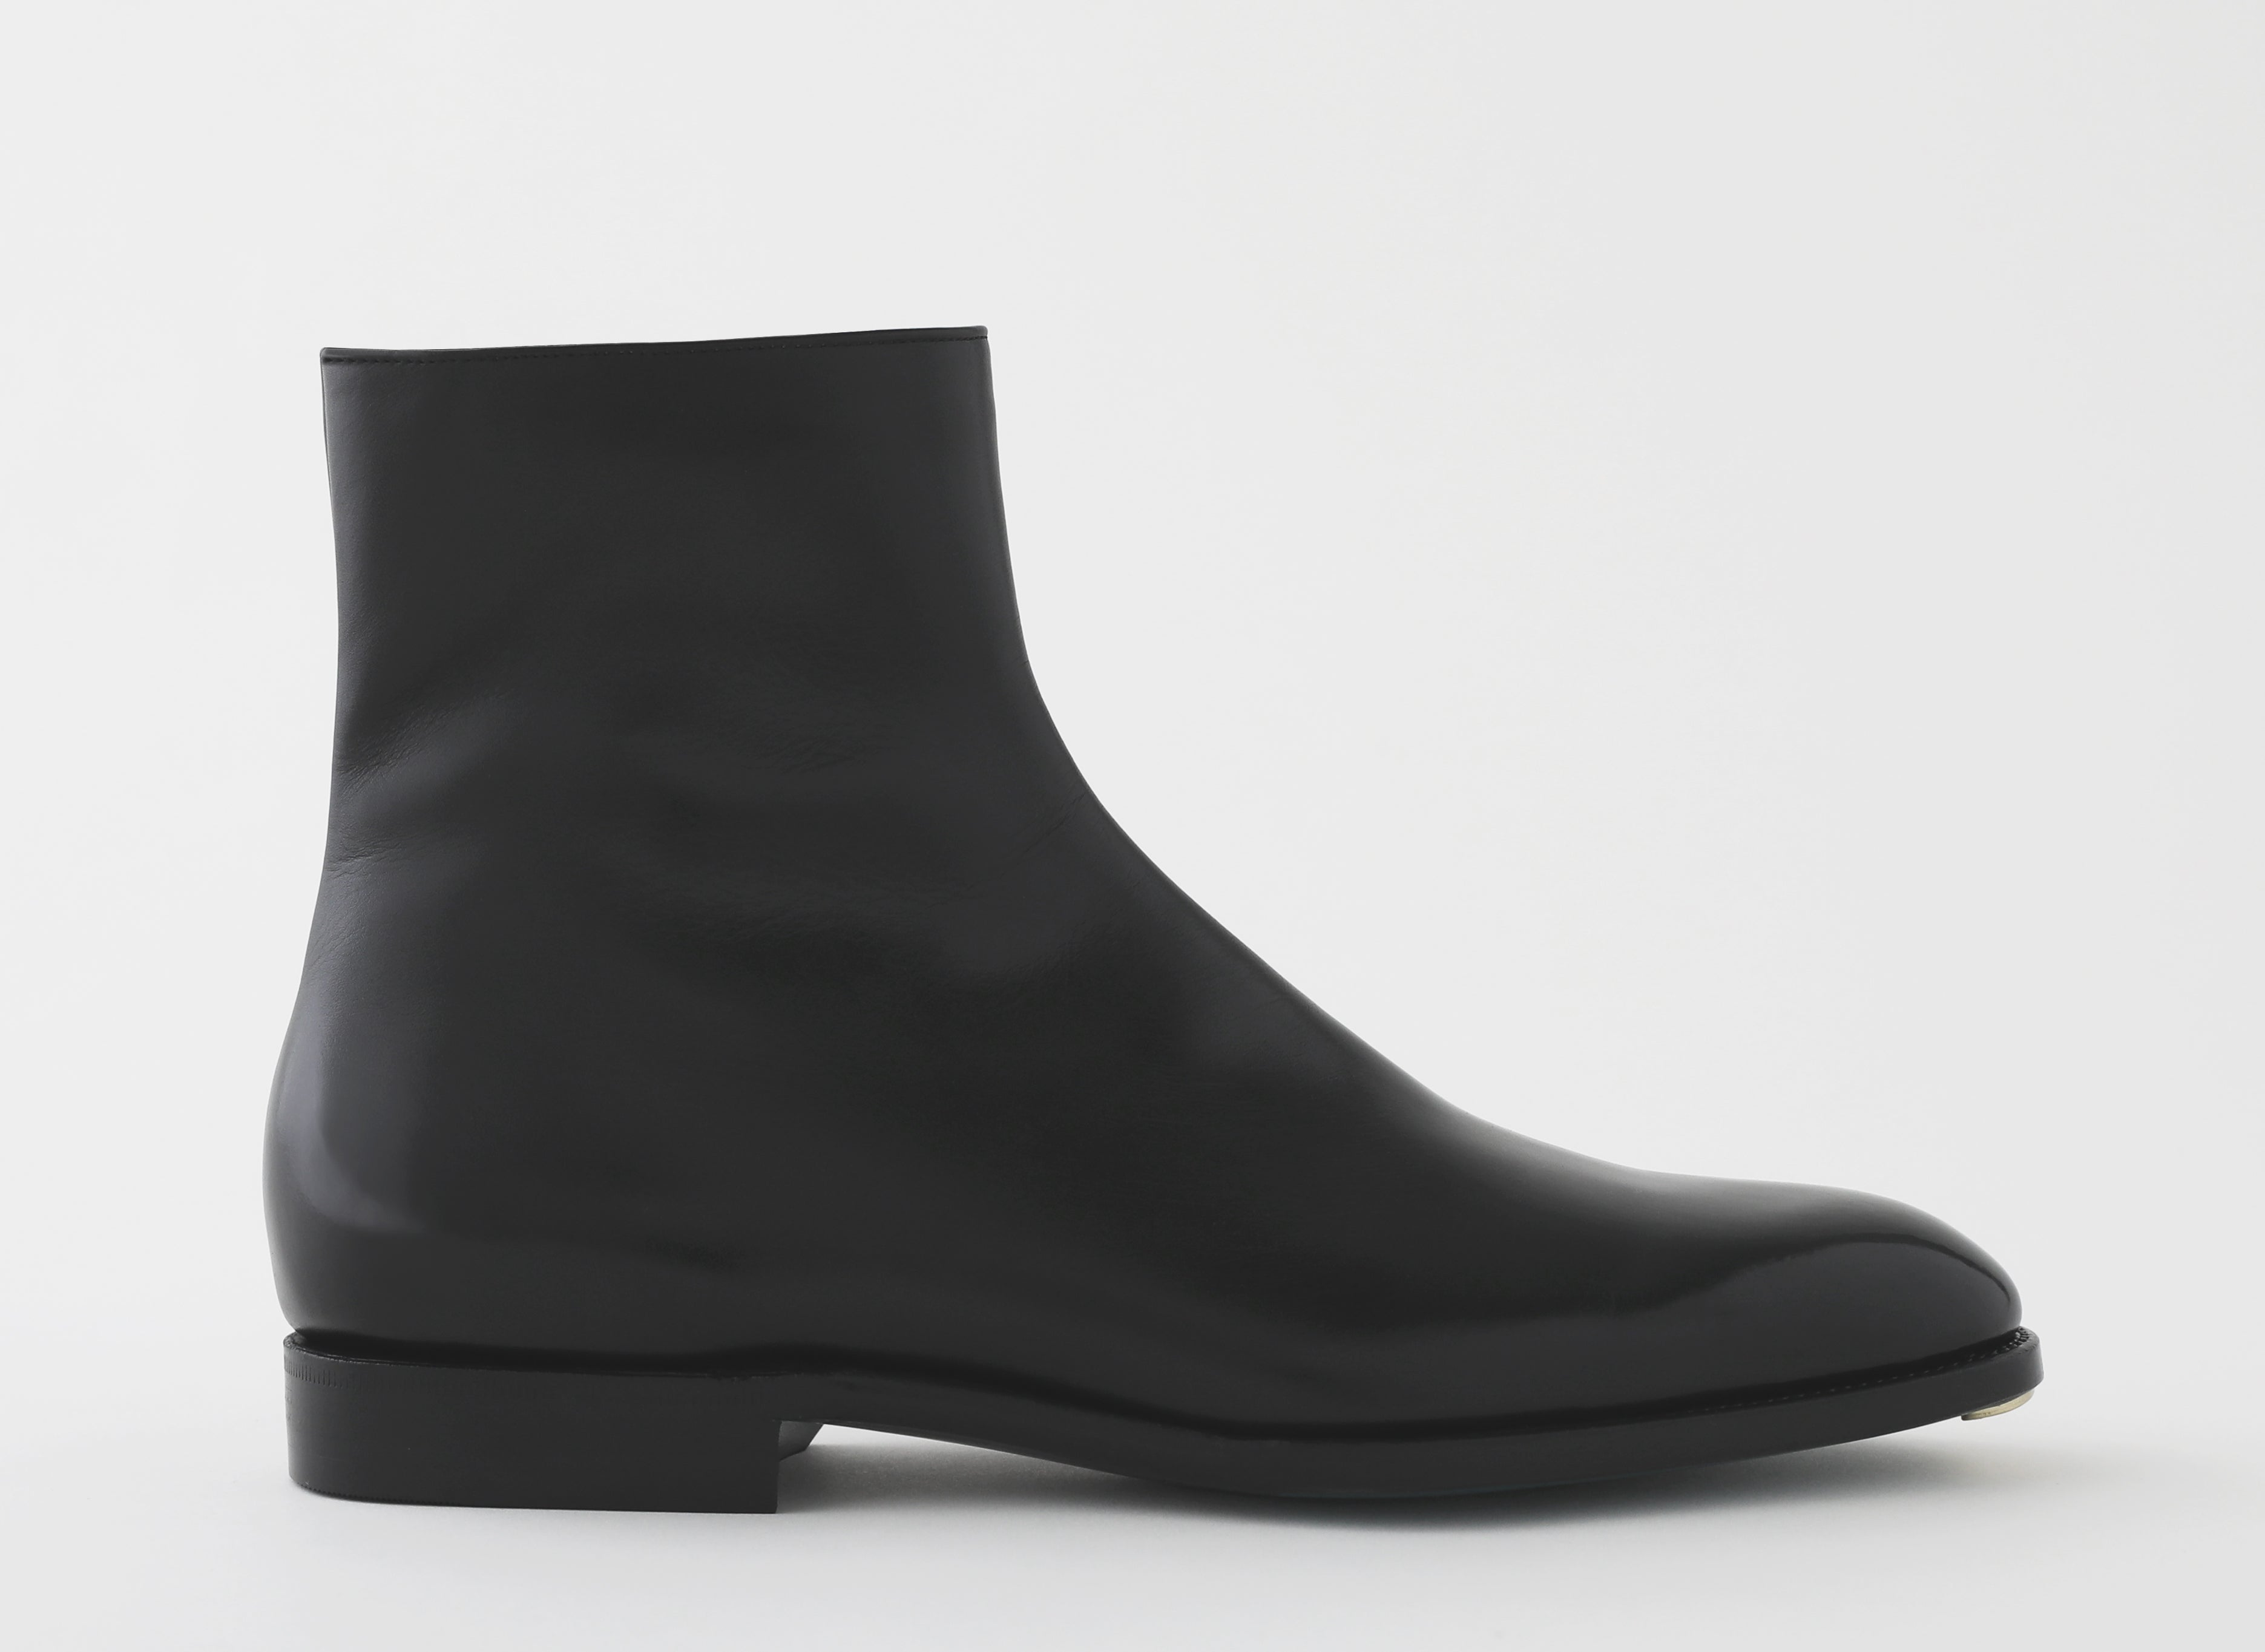 42.STYLE. A134 SEAMLESS BOOTS